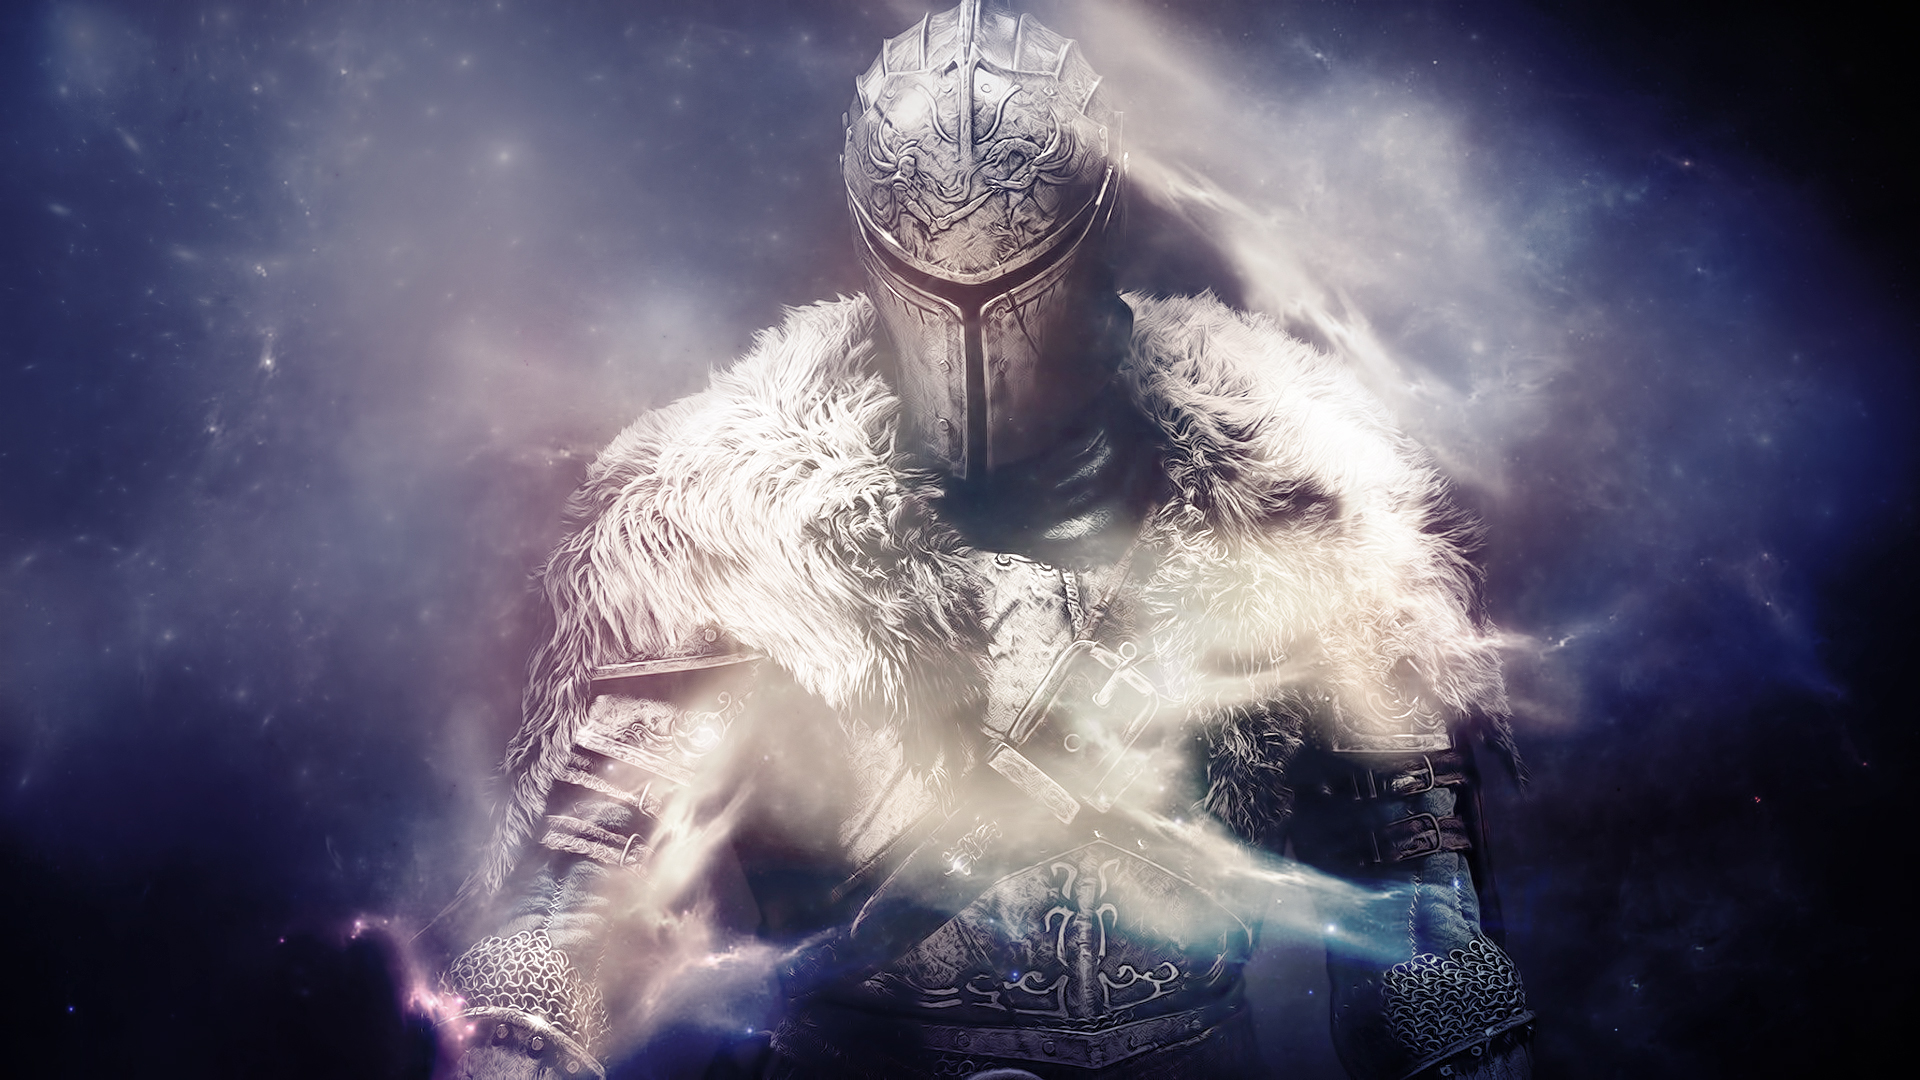 Dark Souls 2 Wallpaper by iamsointense